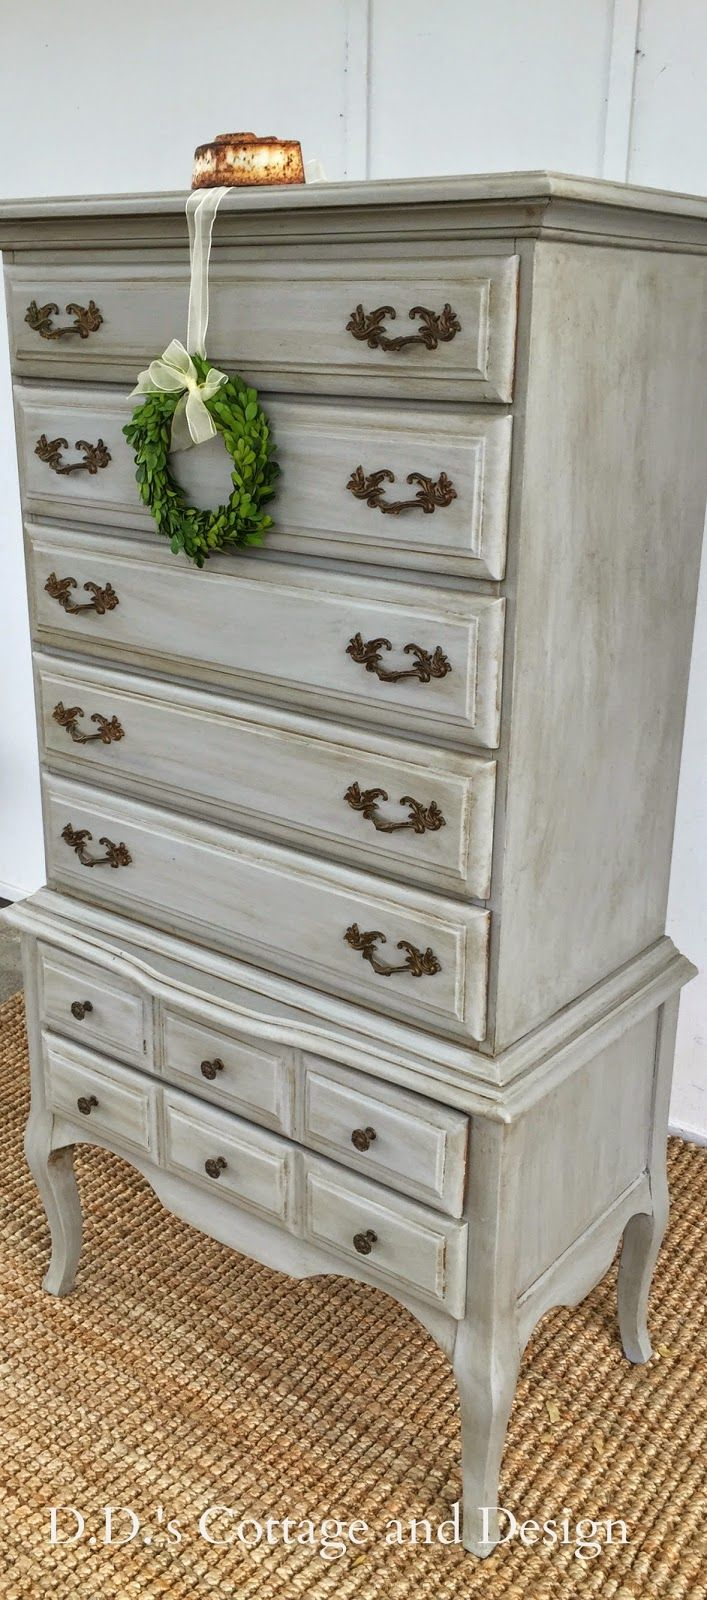 High Quality D.D.u0027s Cottage And Design: Grey French Provincial Chest On Chest